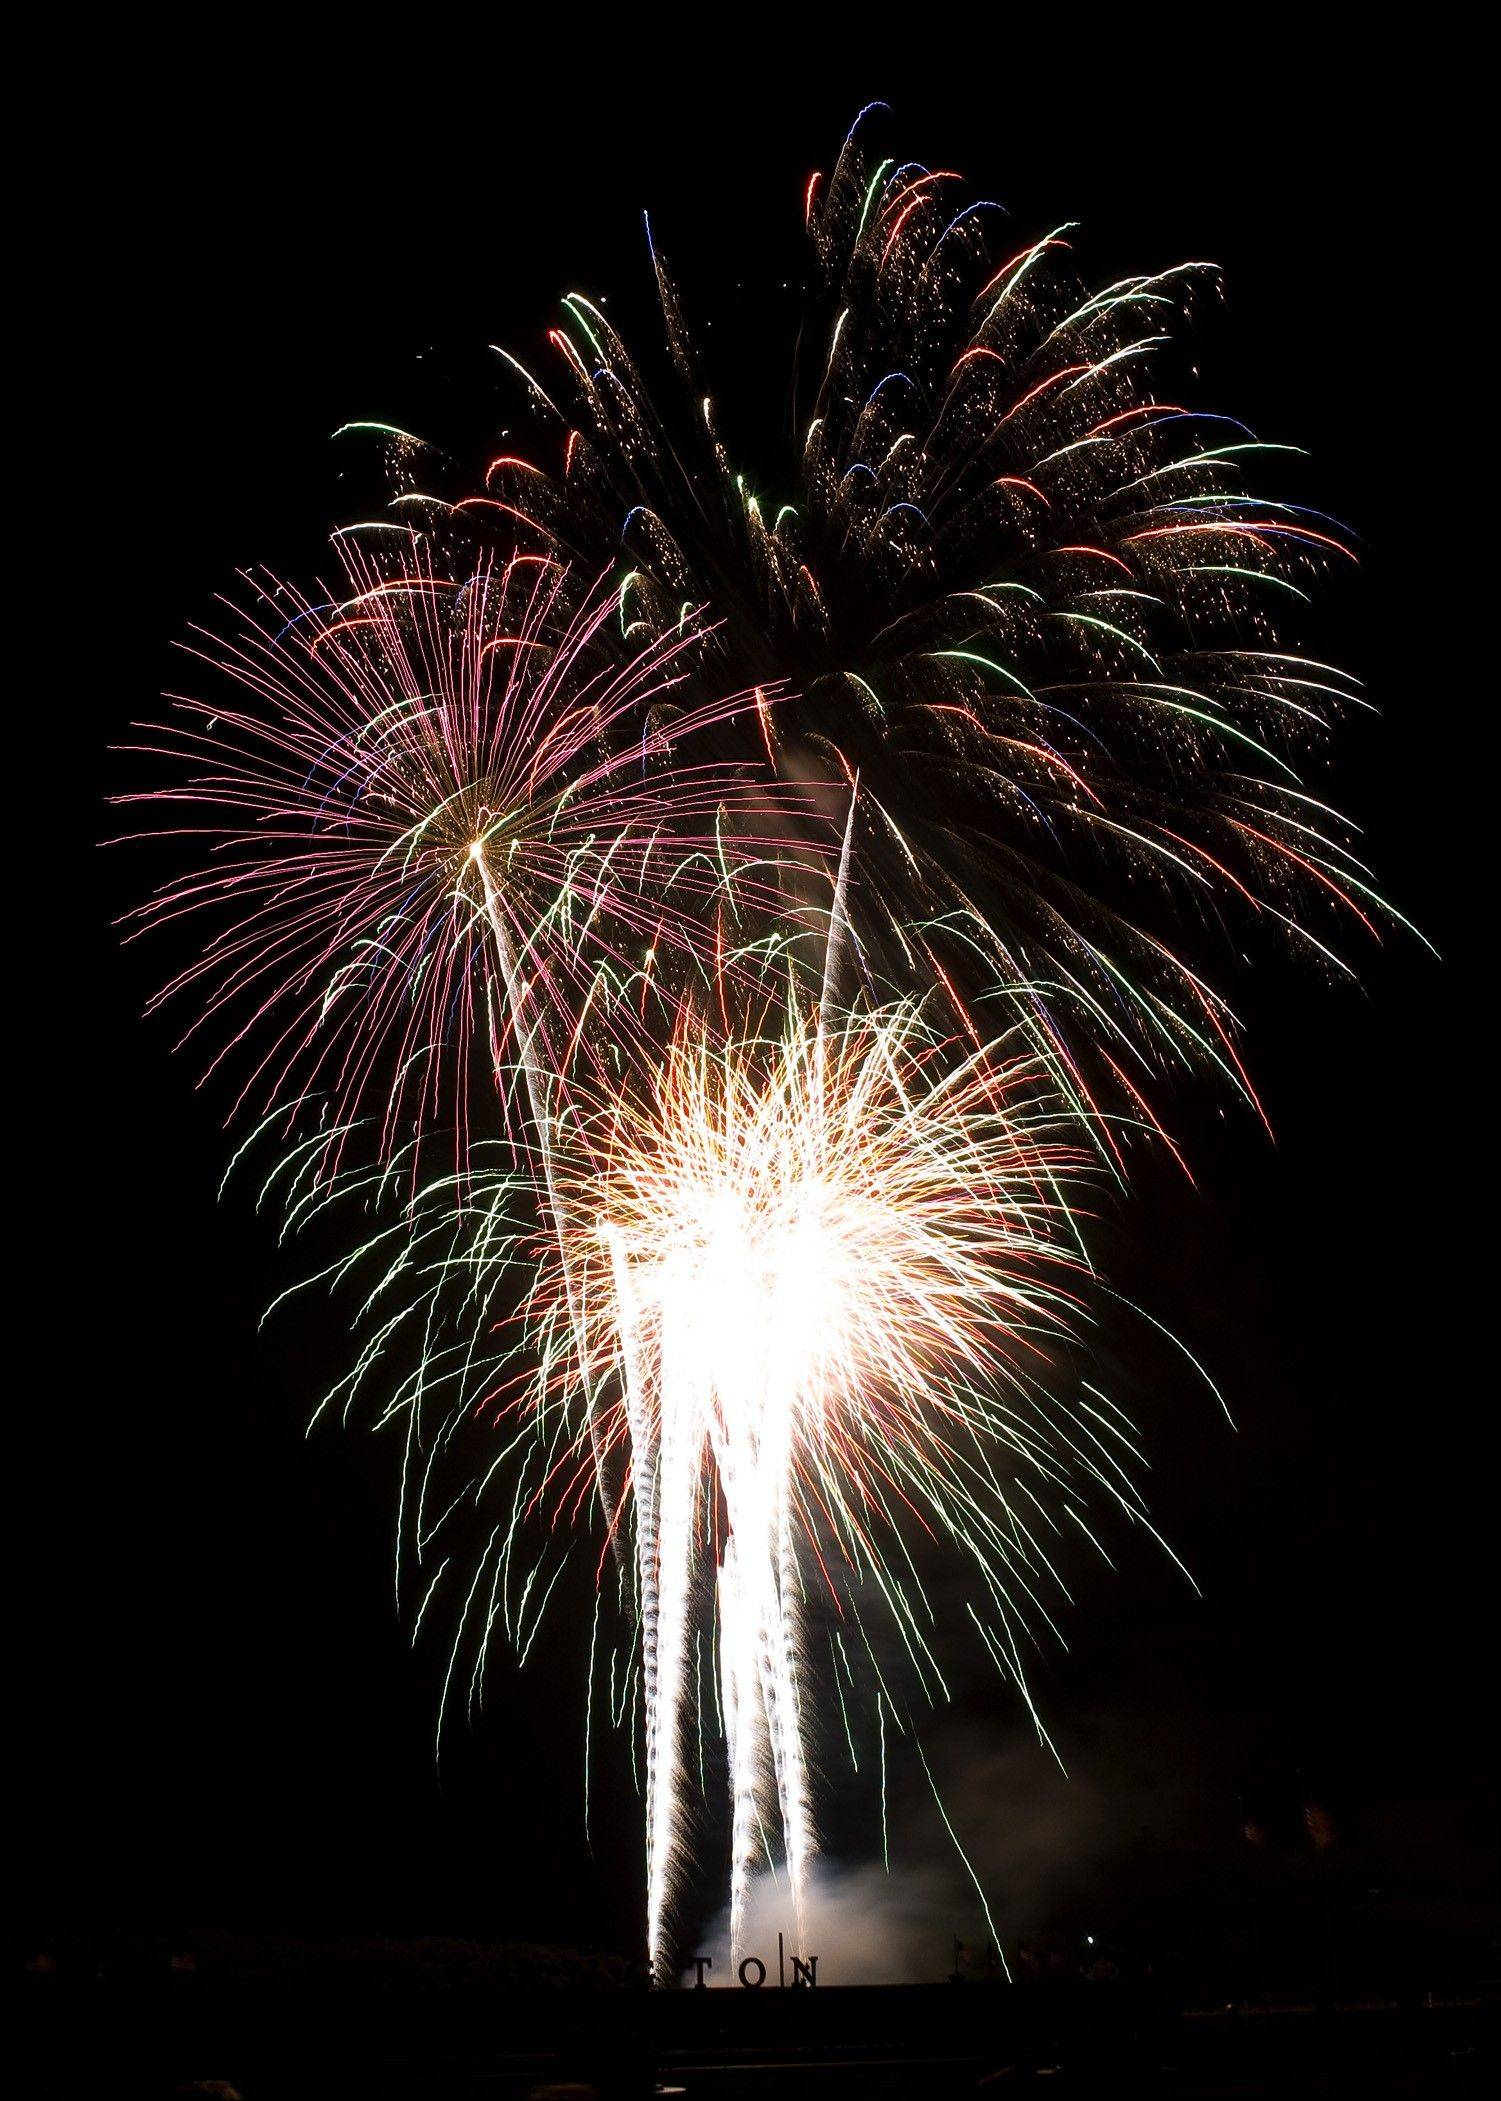 Fireworks will light up the sky Thursday, July 4, in Arlington Heights, as the Arlington International Racecourse features 30 minutes of fireworks set to music.